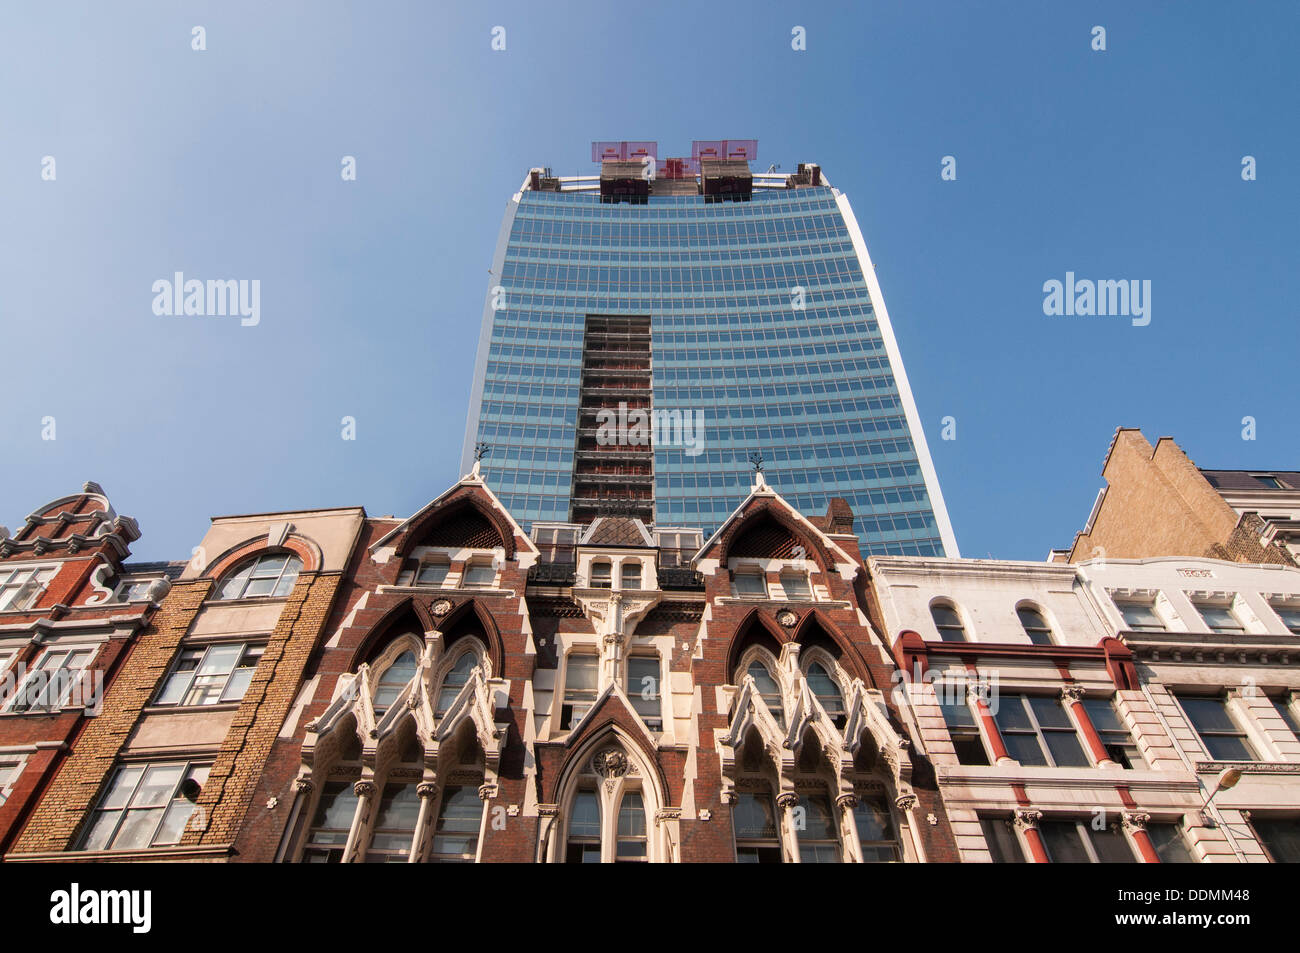 London, UK. 4th Sept, 2013. The building officially known as 20 Fenchurch Street, but more commonly known as the 'Walkie Talkie' building has earned the unenviable reputation of reflecting afternoon sunlight down onto the street due to its concave glass exterior. Credit:  Stephen Chung/Alamy Live News - Stock Image